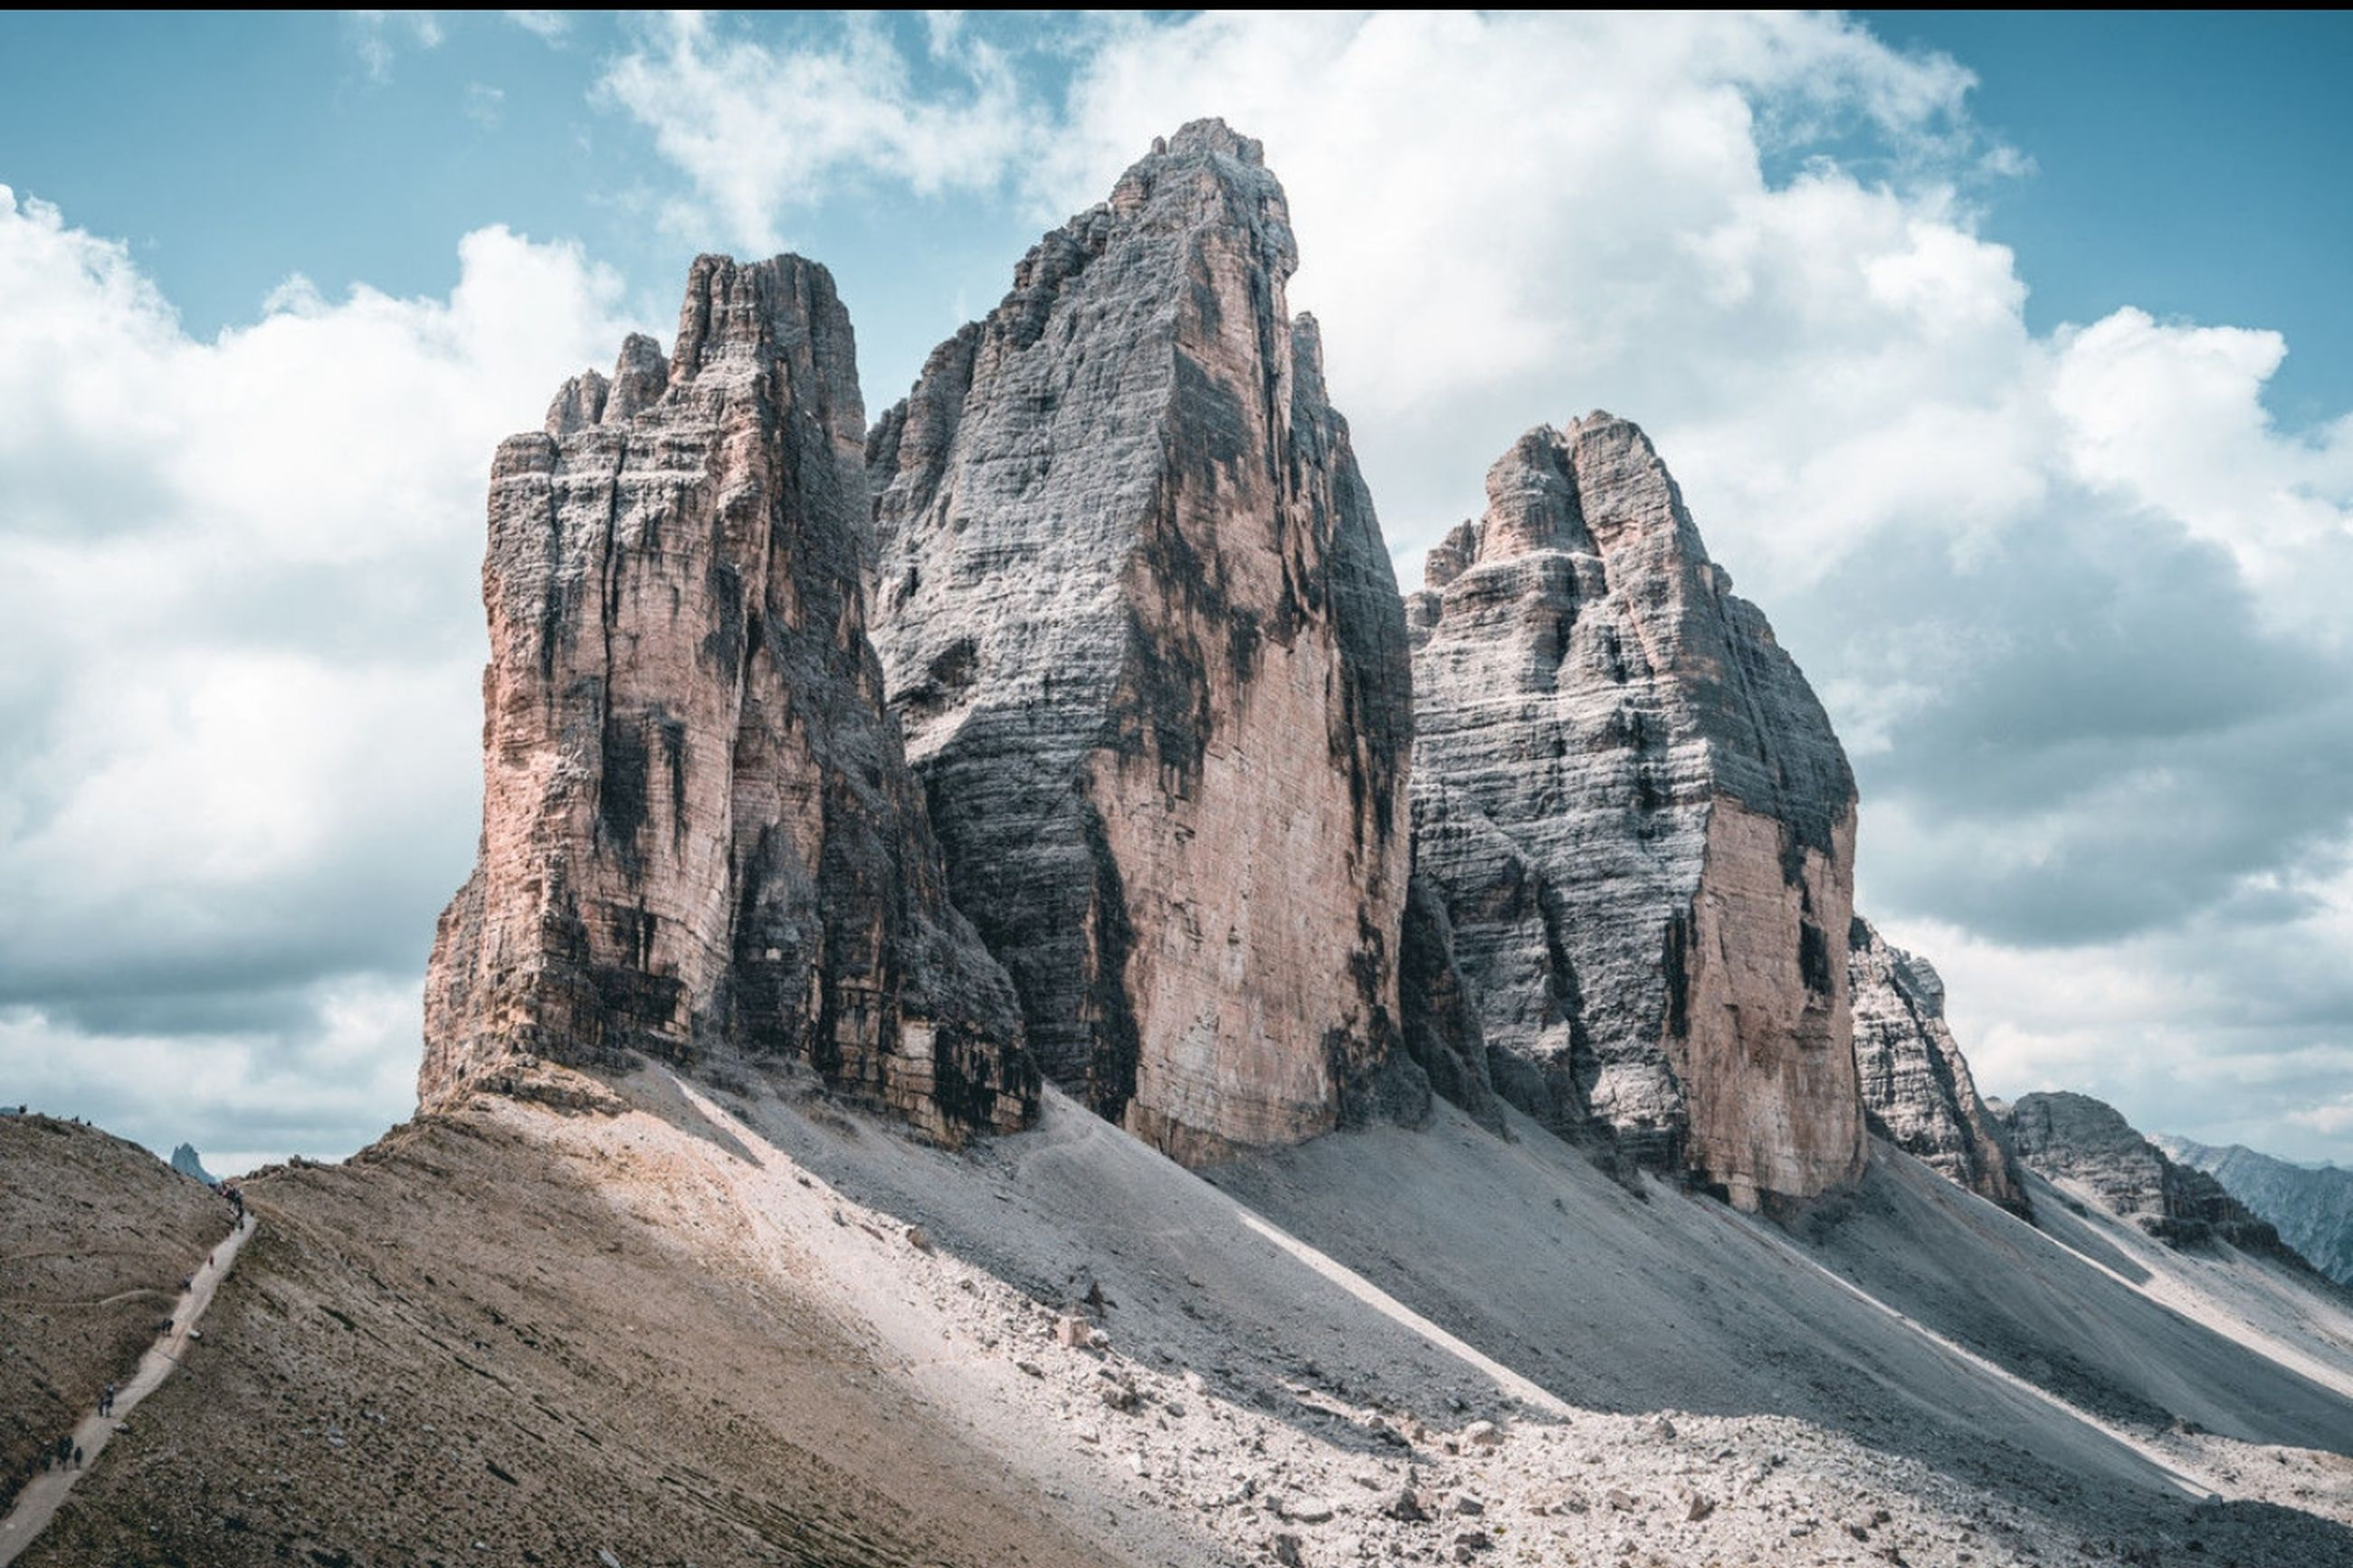 cloud - sky, sky, rock, rock formation, scenics - nature, mountain, beauty in nature, rock - object, nature, day, tranquil scene, solid, landscape, environment, mountain range, no people, tranquility, non-urban scene, travel destinations, land, outdoors, formation, mountain peak, eroded, arid climate